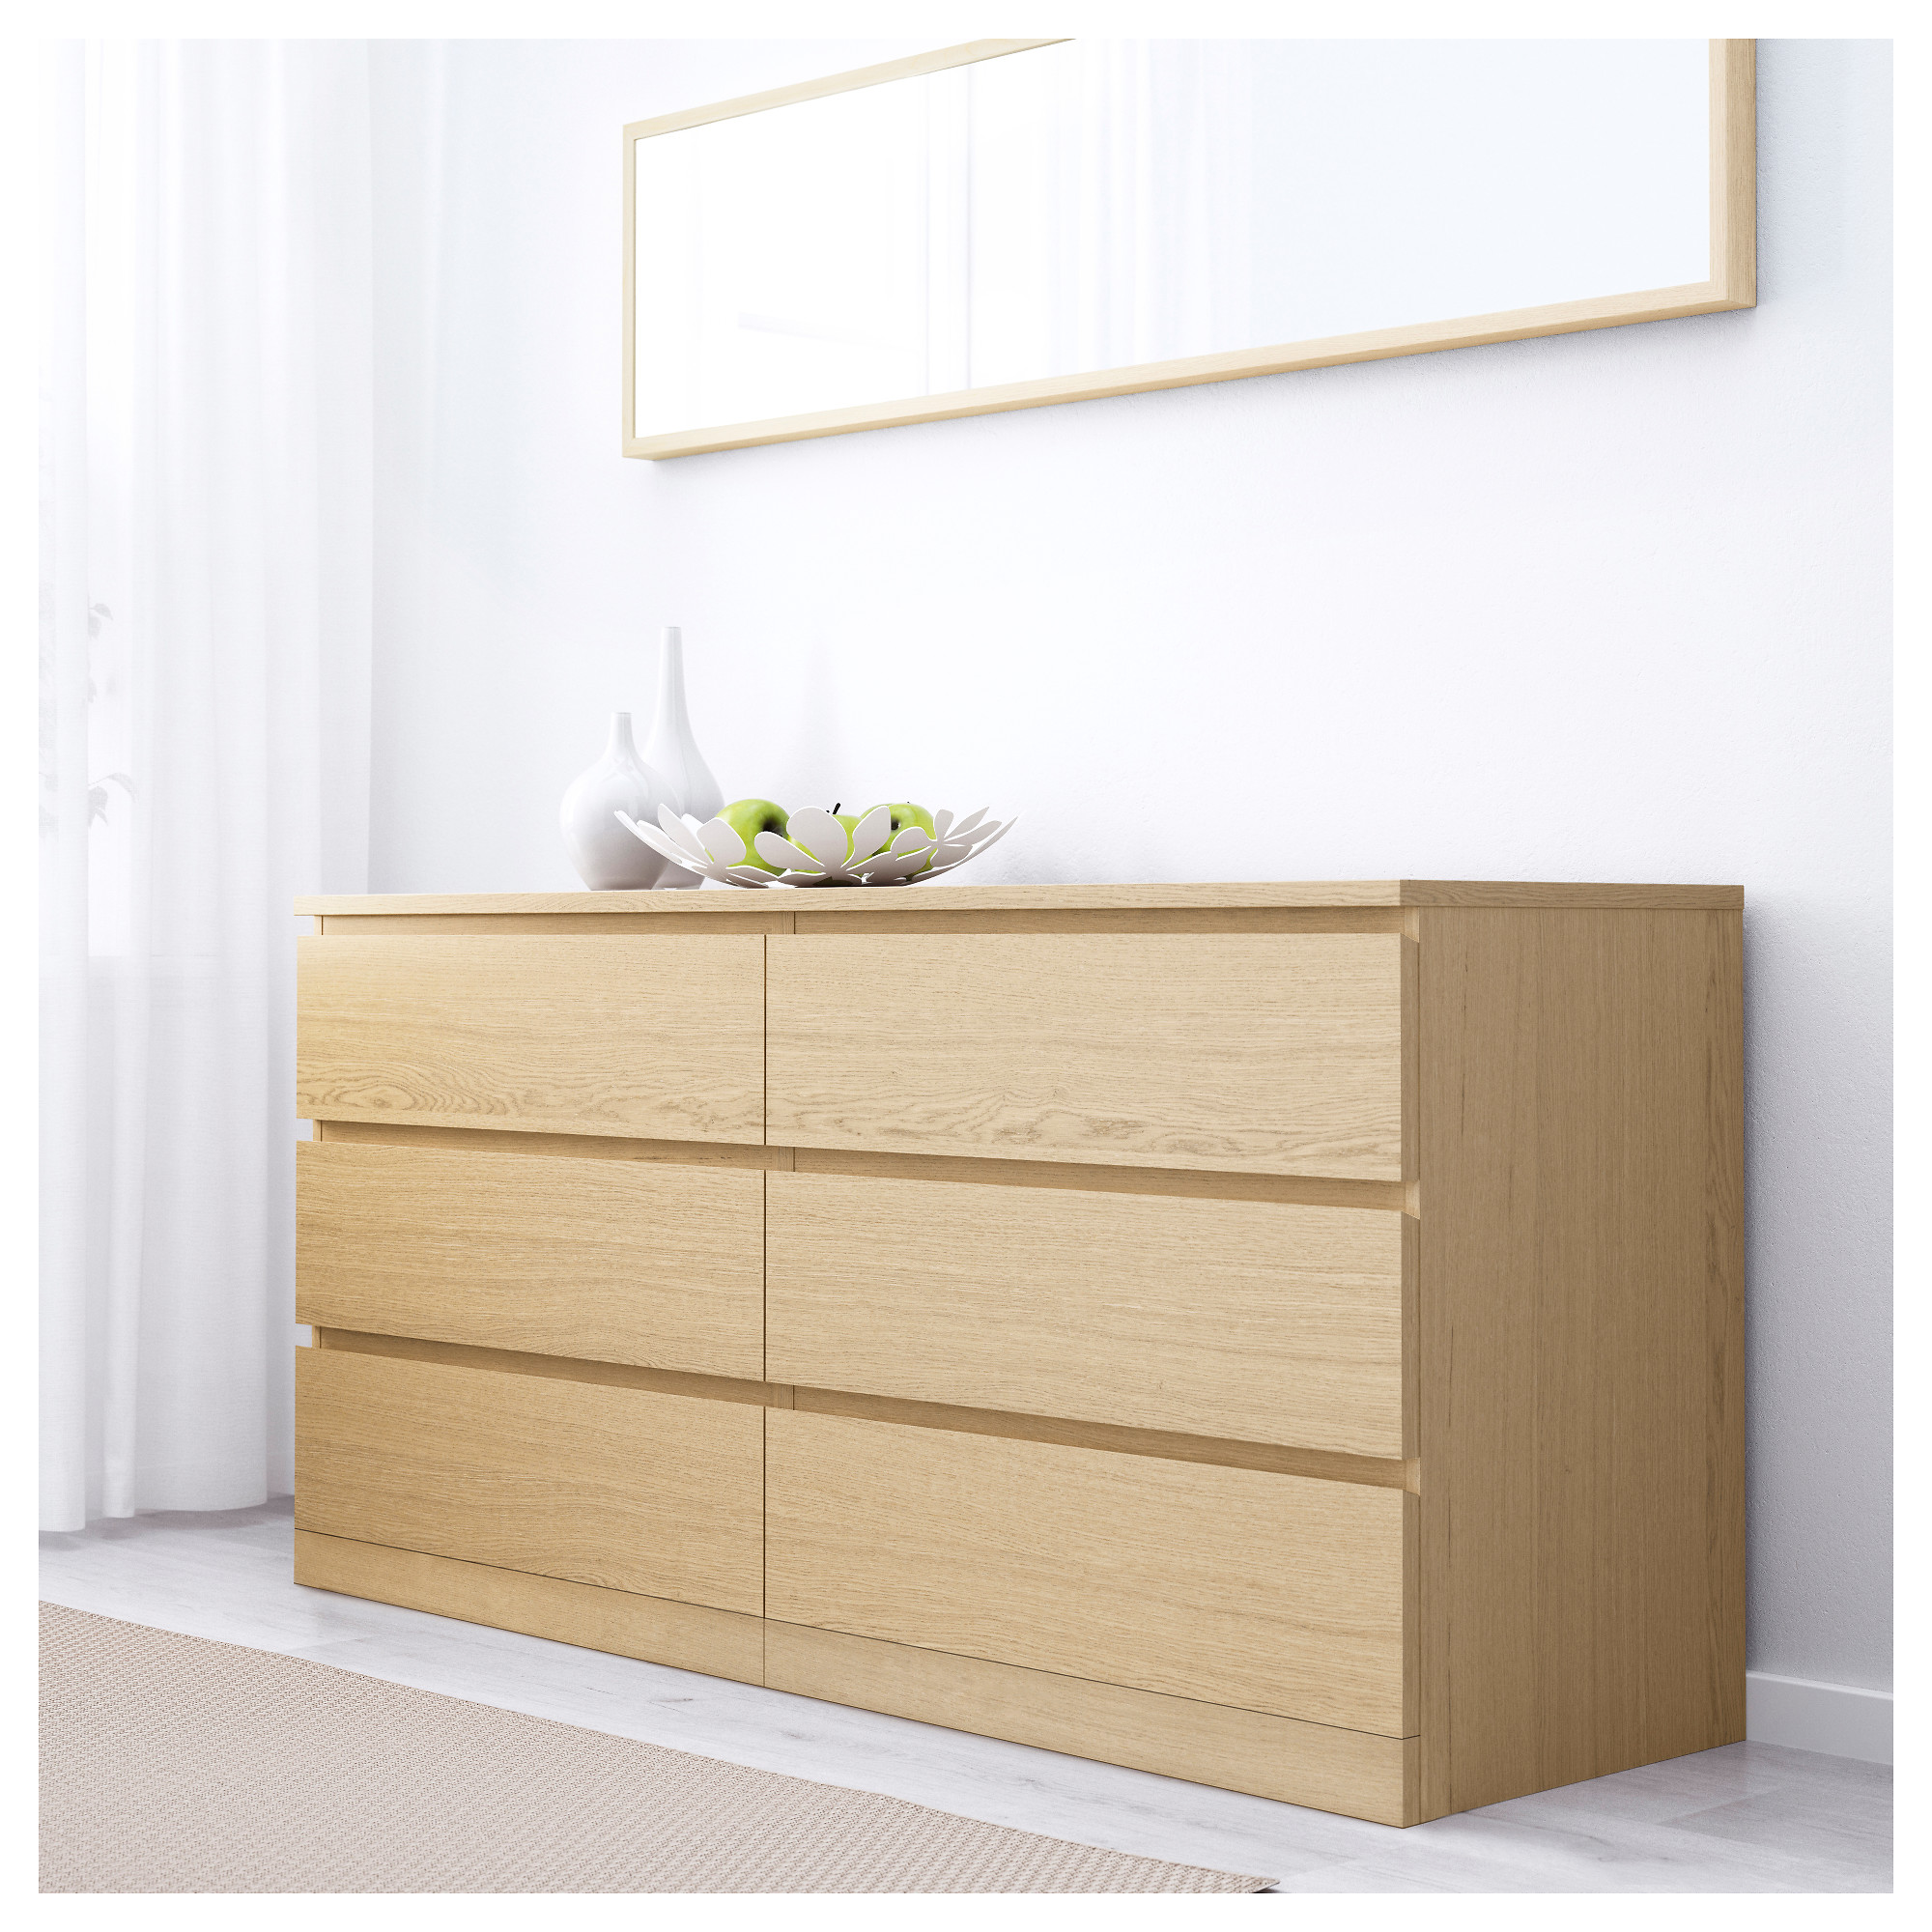 MALM 6-drawer dresser - white - IKEA